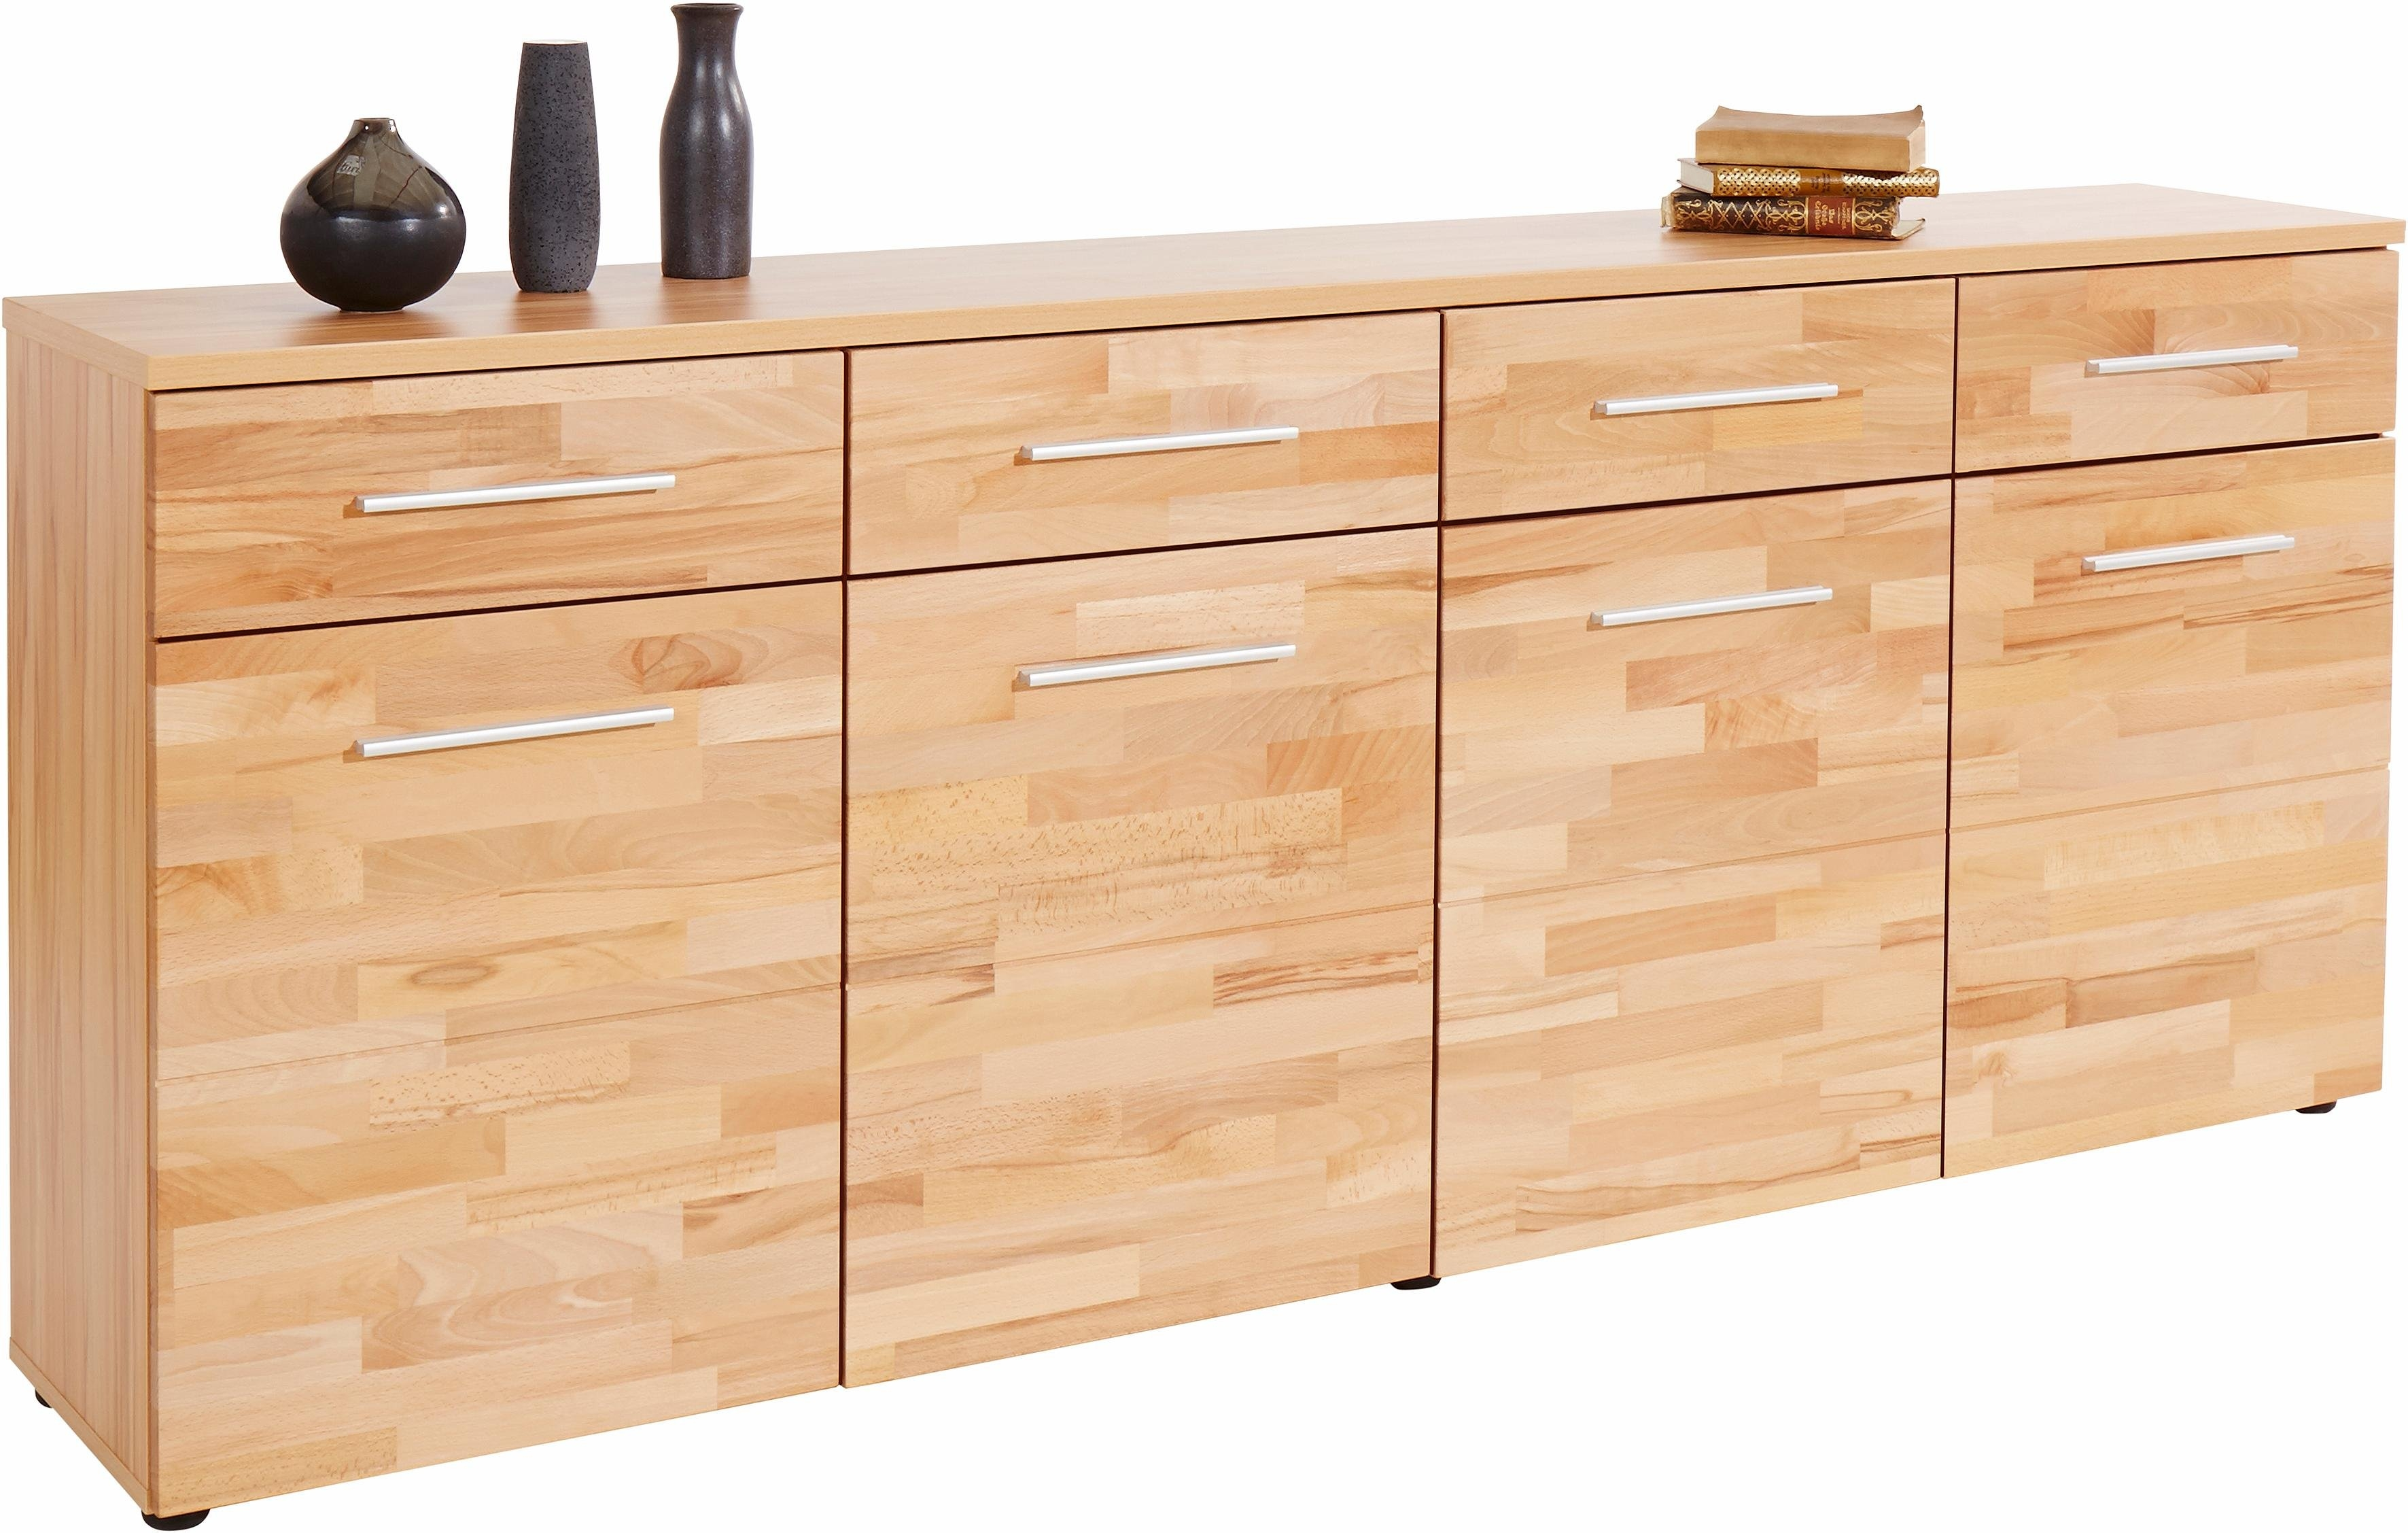 sideboard breedte 200 cm bestel nu bij otto. Black Bedroom Furniture Sets. Home Design Ideas